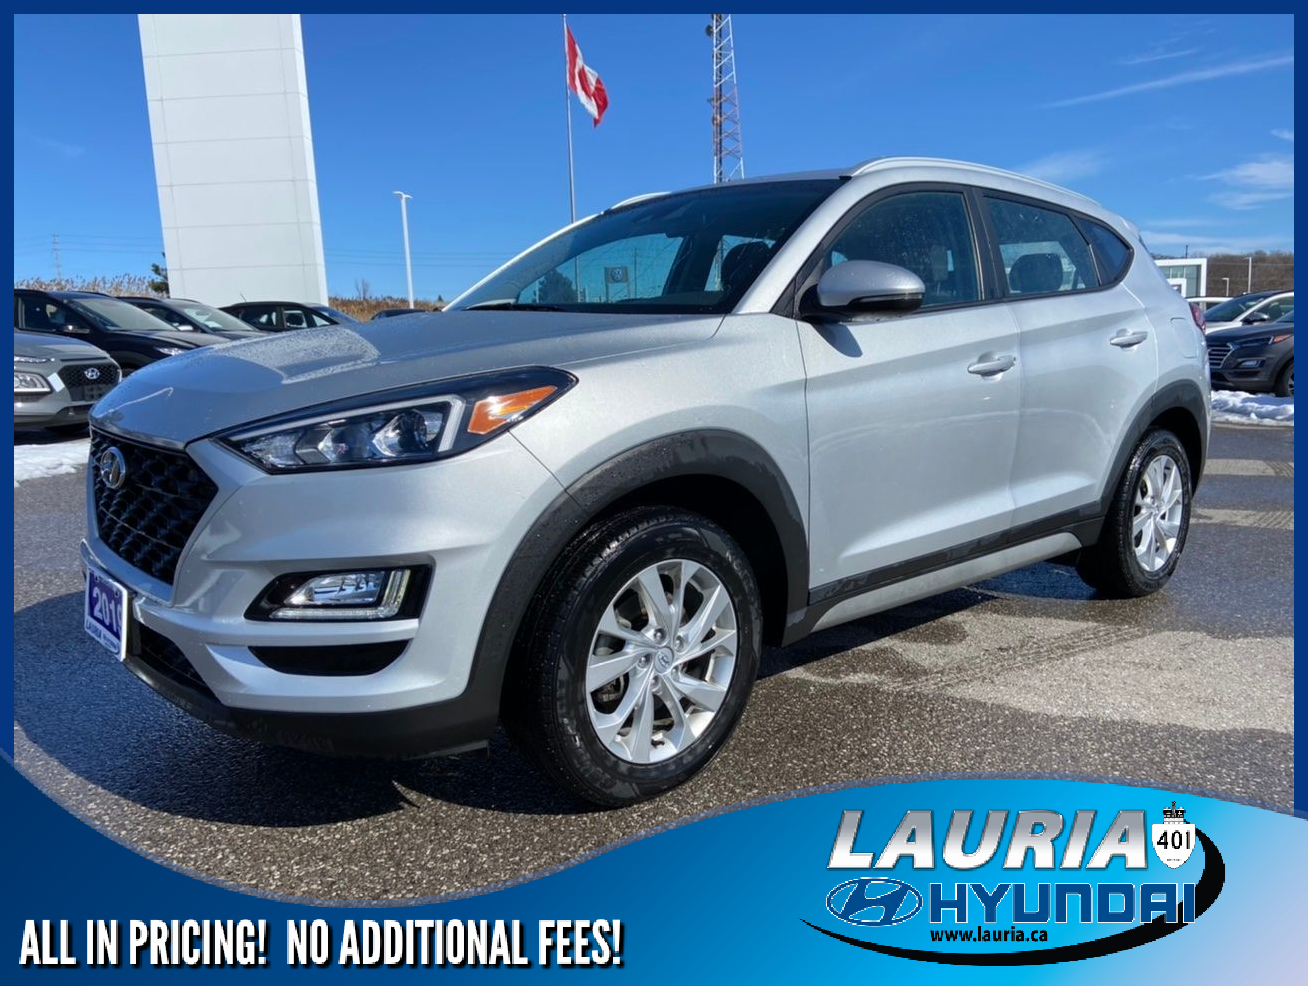 Certified Pre-Owned 2019 Hyundai Tucson 2.0L AWD Preferred - LOW KMS